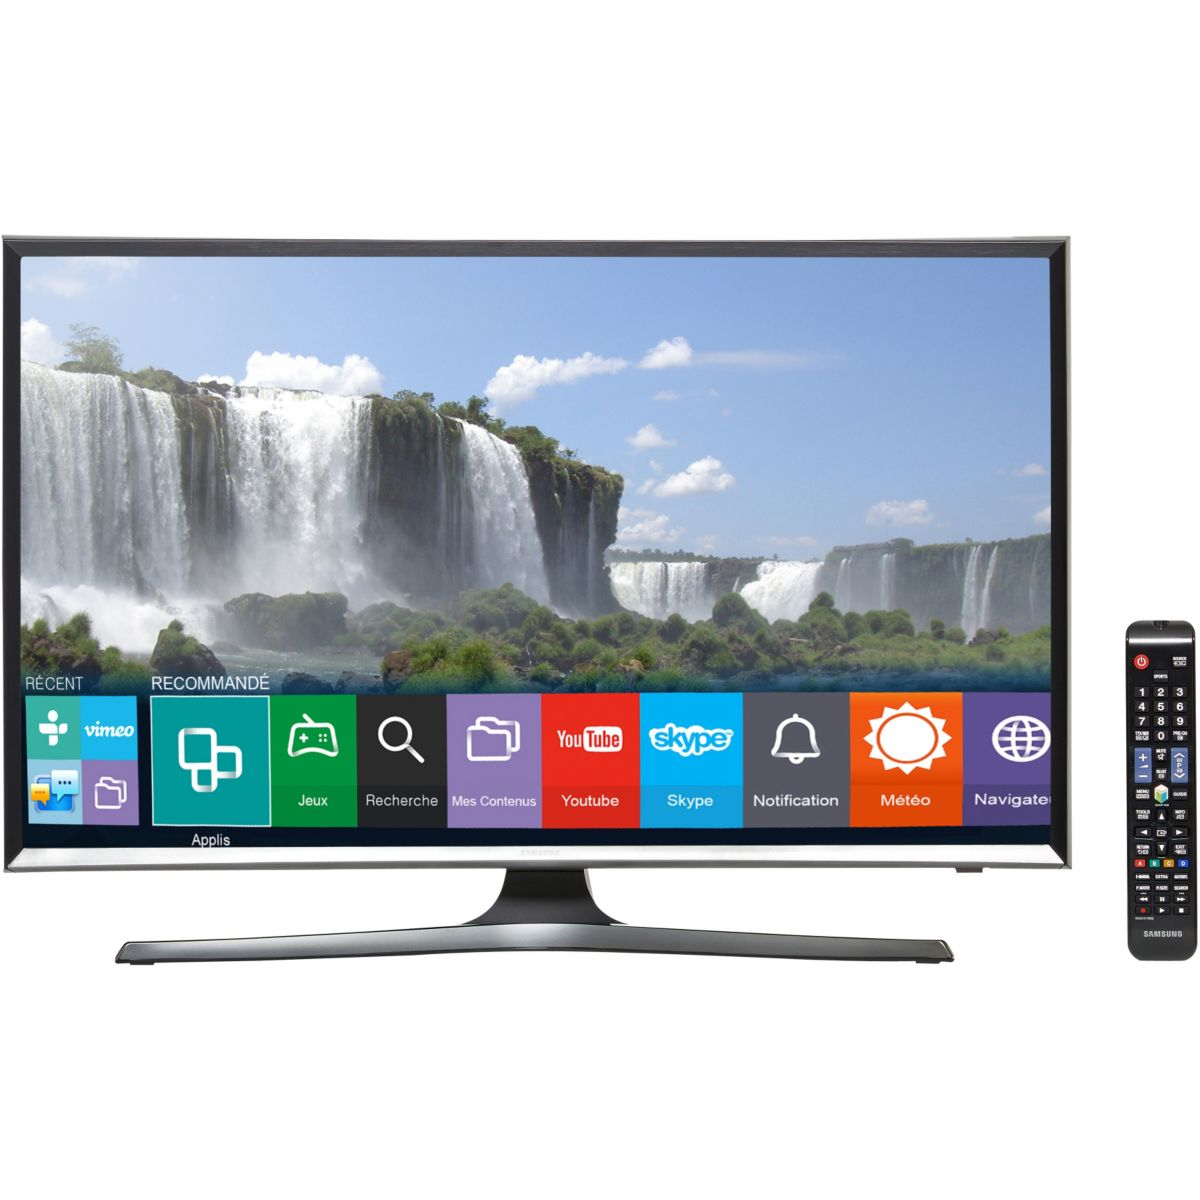 tv samsung ue32j6300 800hz cmr smart tv incurve ebay. Black Bedroom Furniture Sets. Home Design Ideas